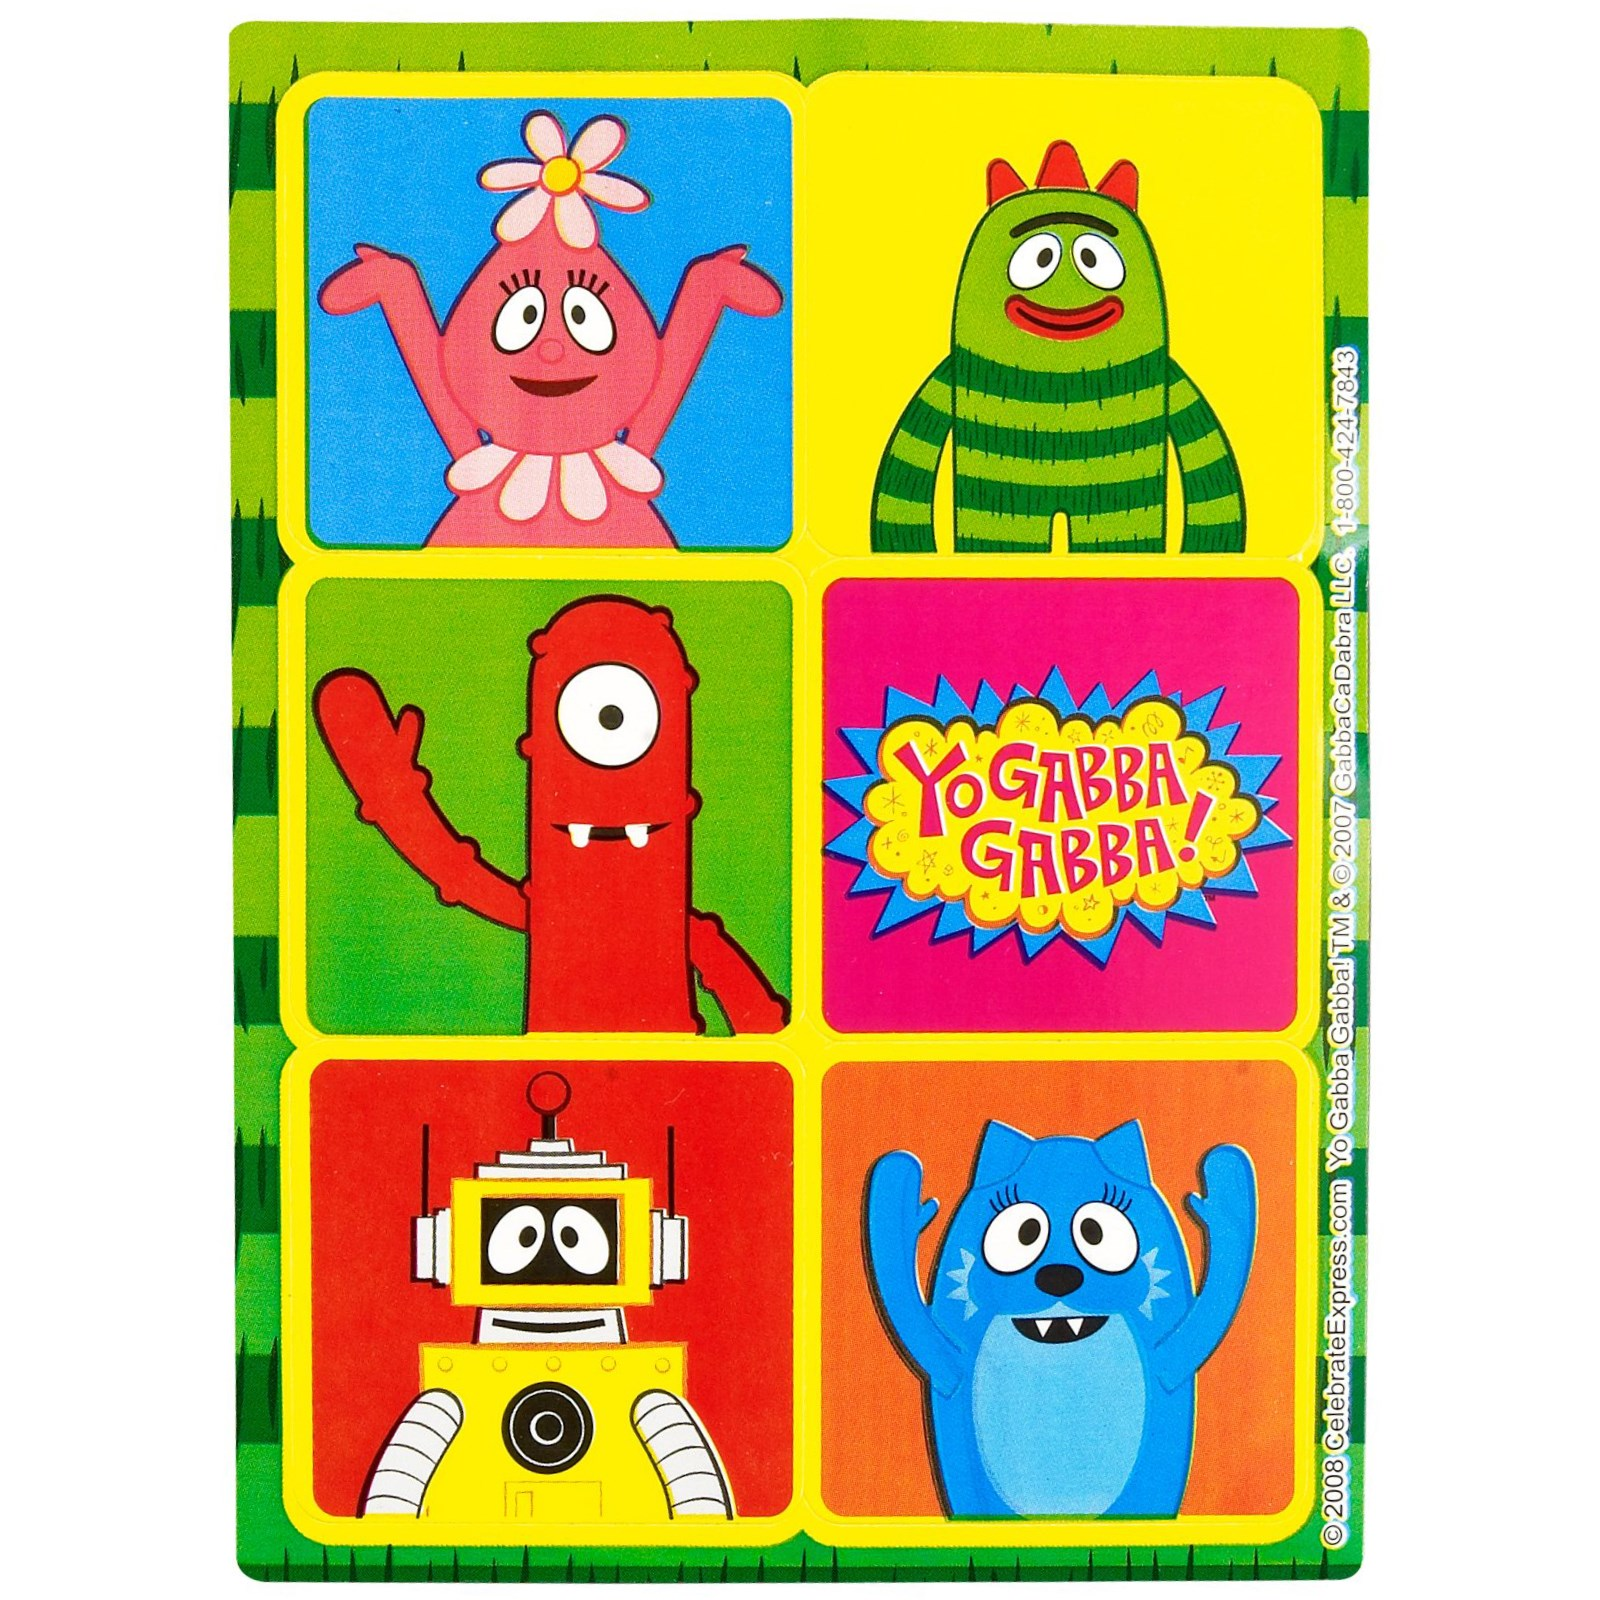 Yo Gabba Gabba Inflatable Christmas Decoration - Default image yo gabba gabba sticker sheets